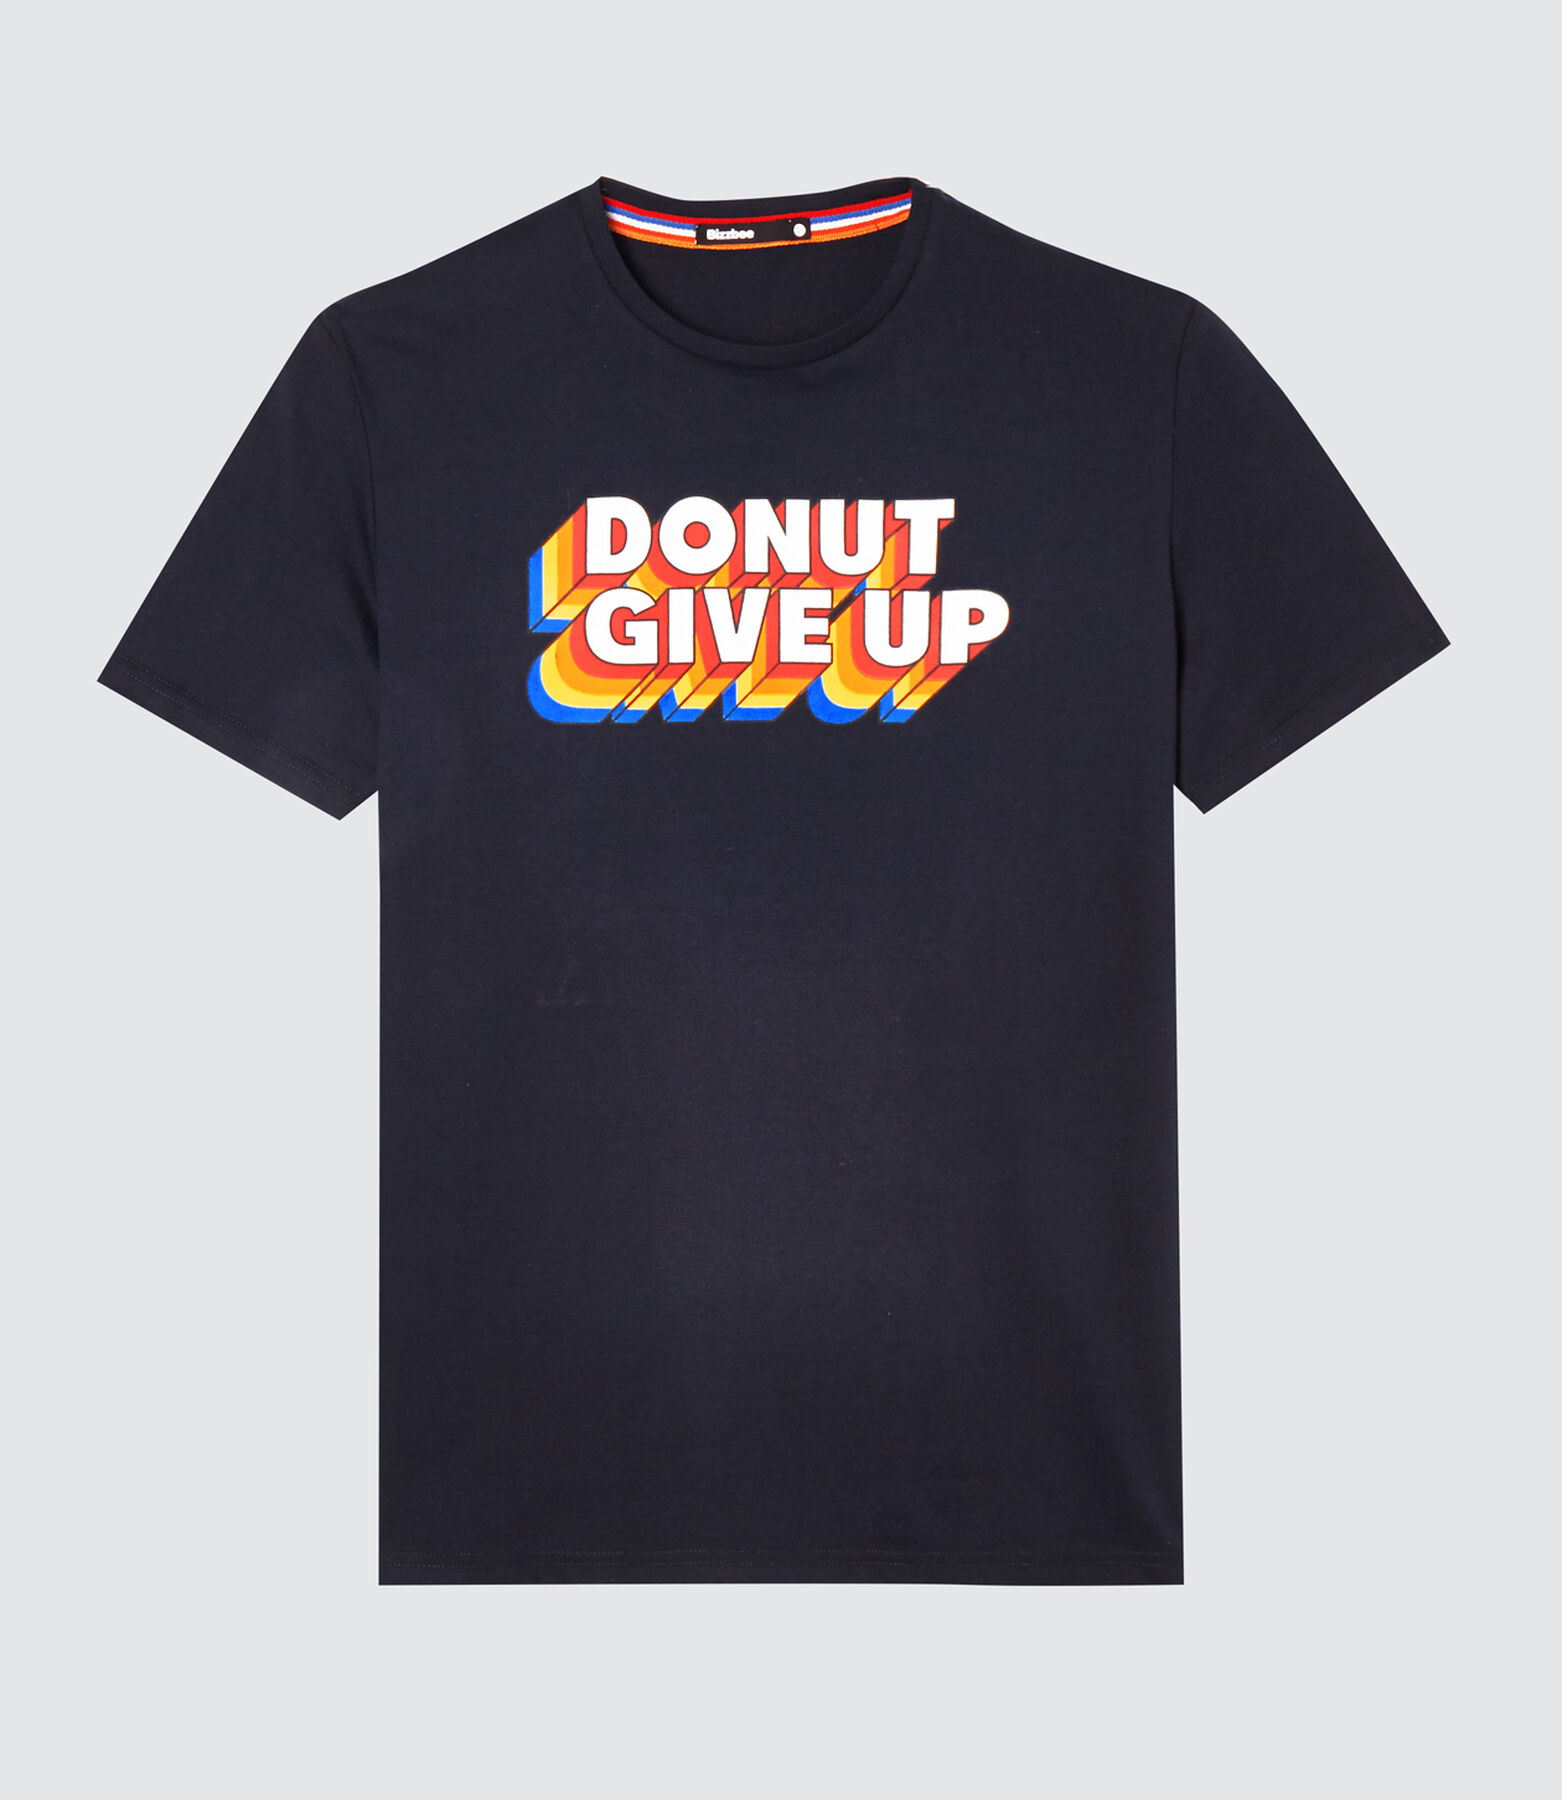 T-shirt Donut Give up